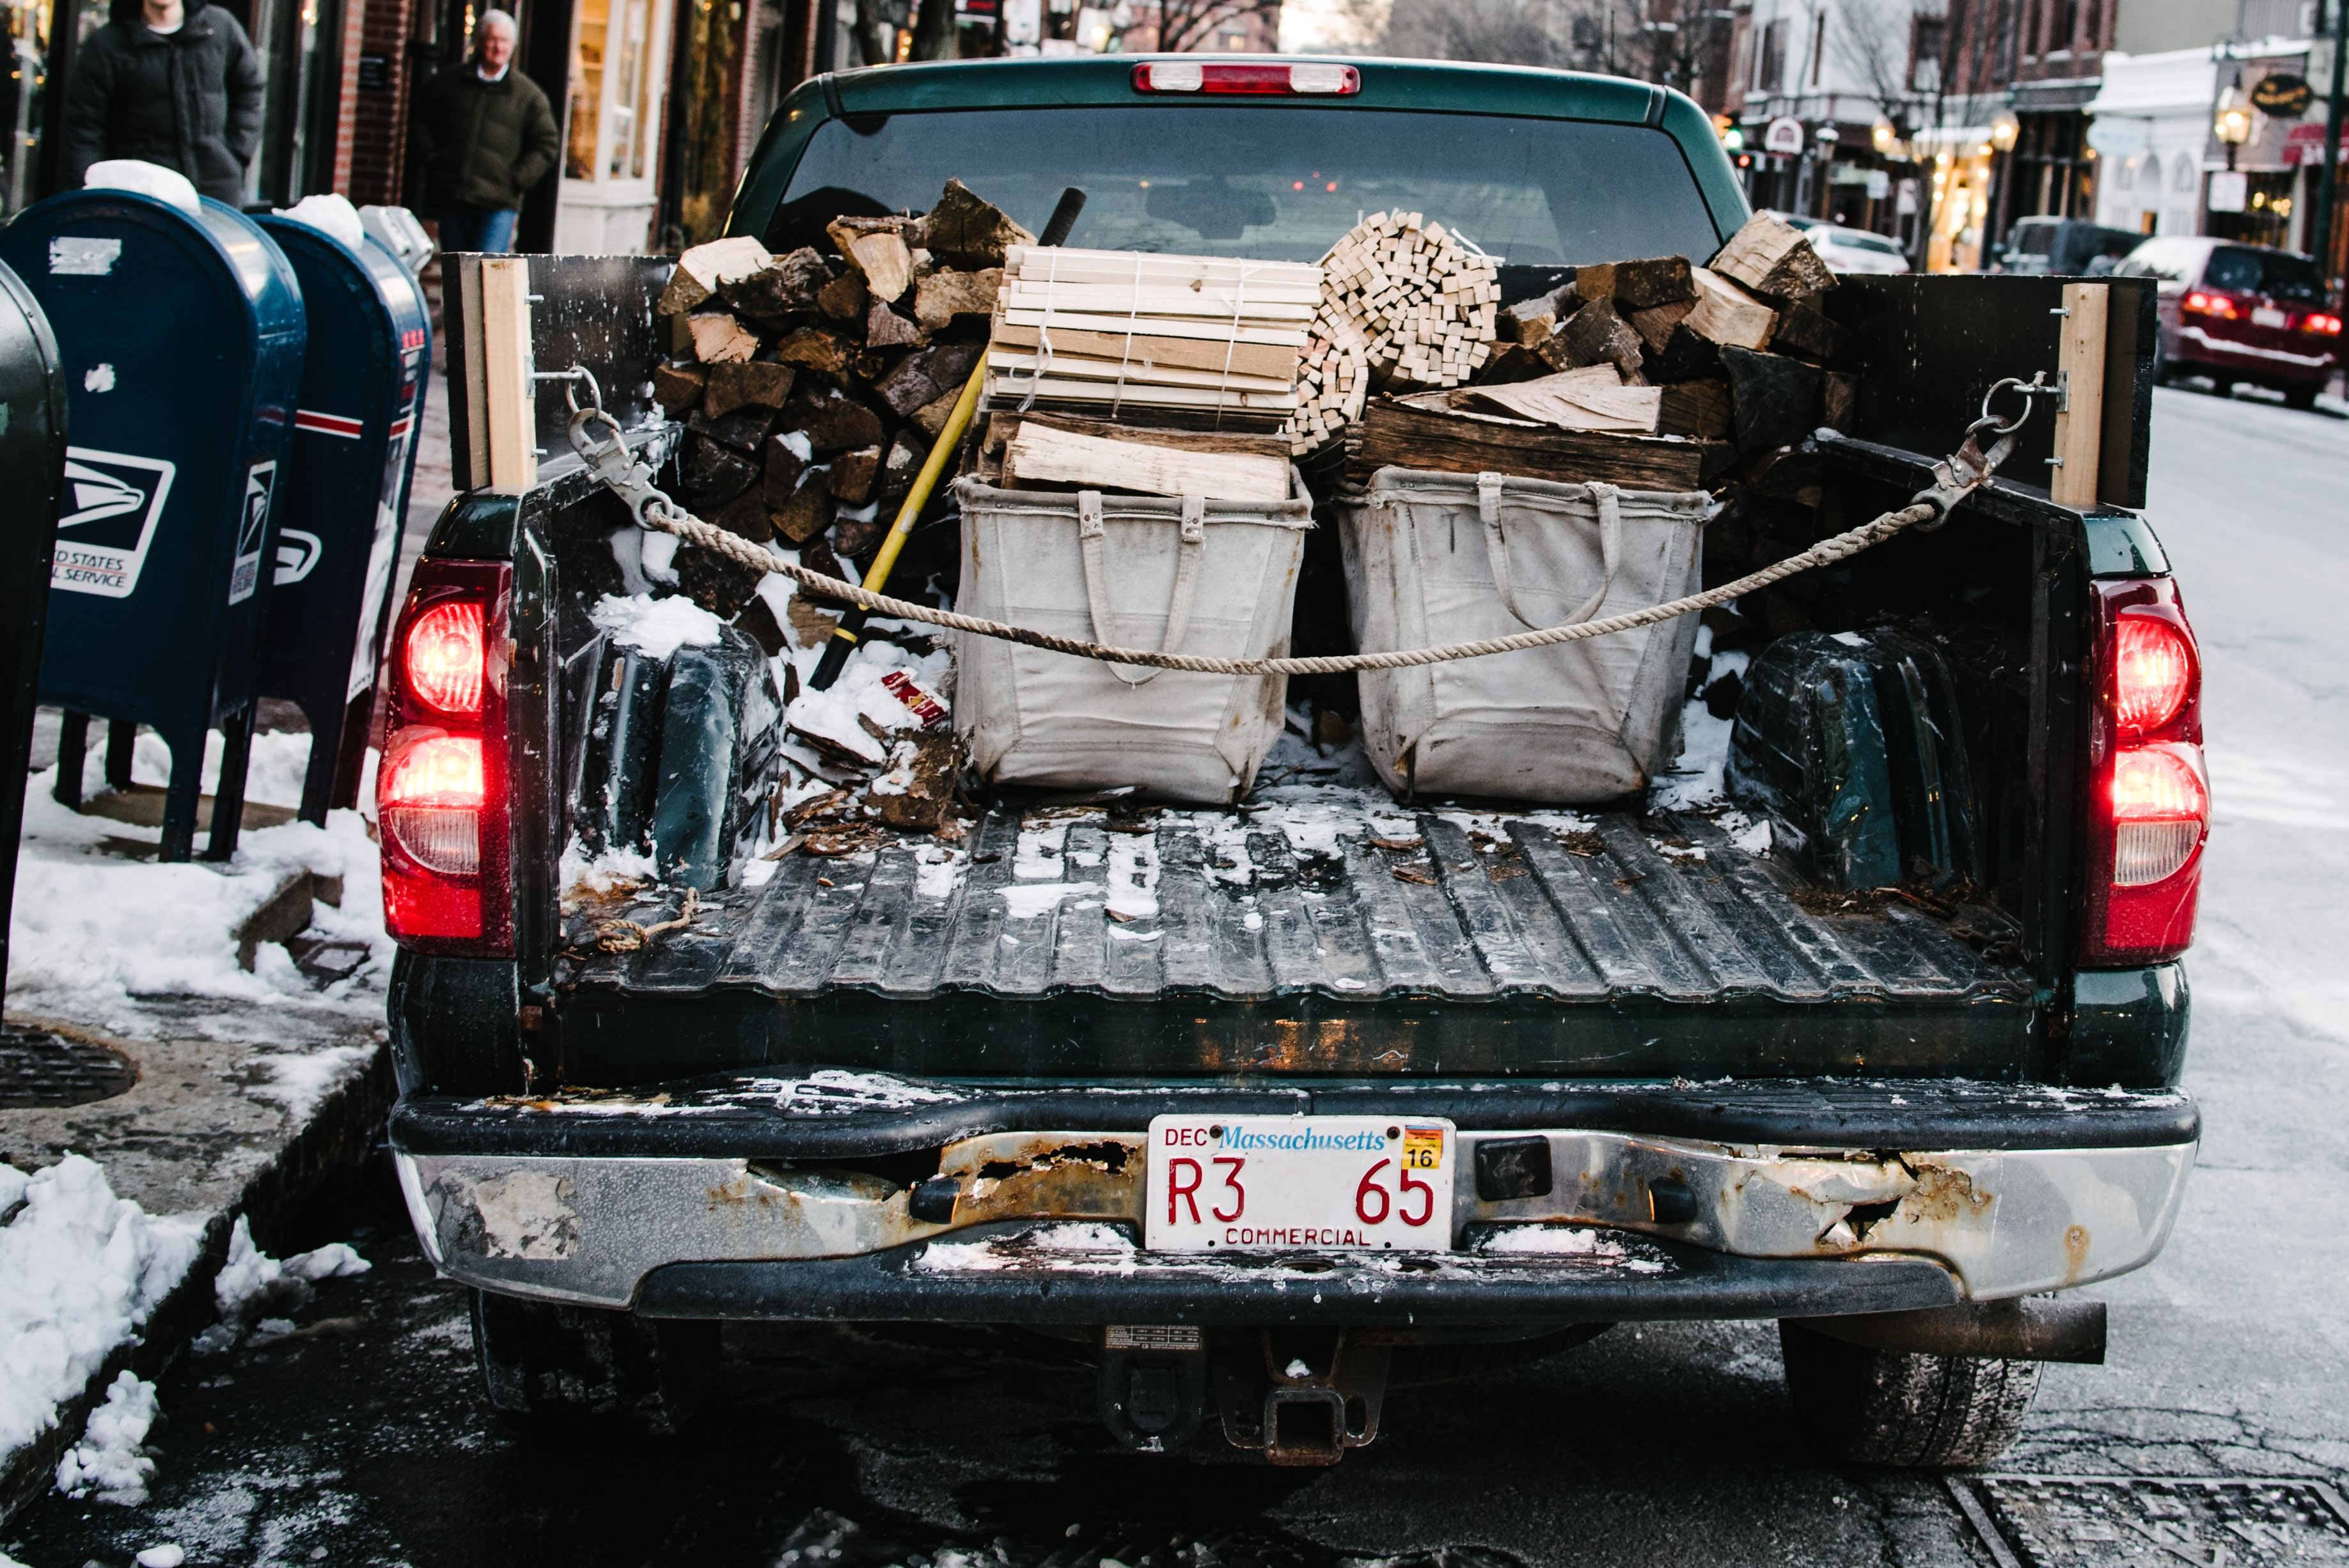 Open flatbed of a truck in Boston winter containing chopped wood and storage baskets